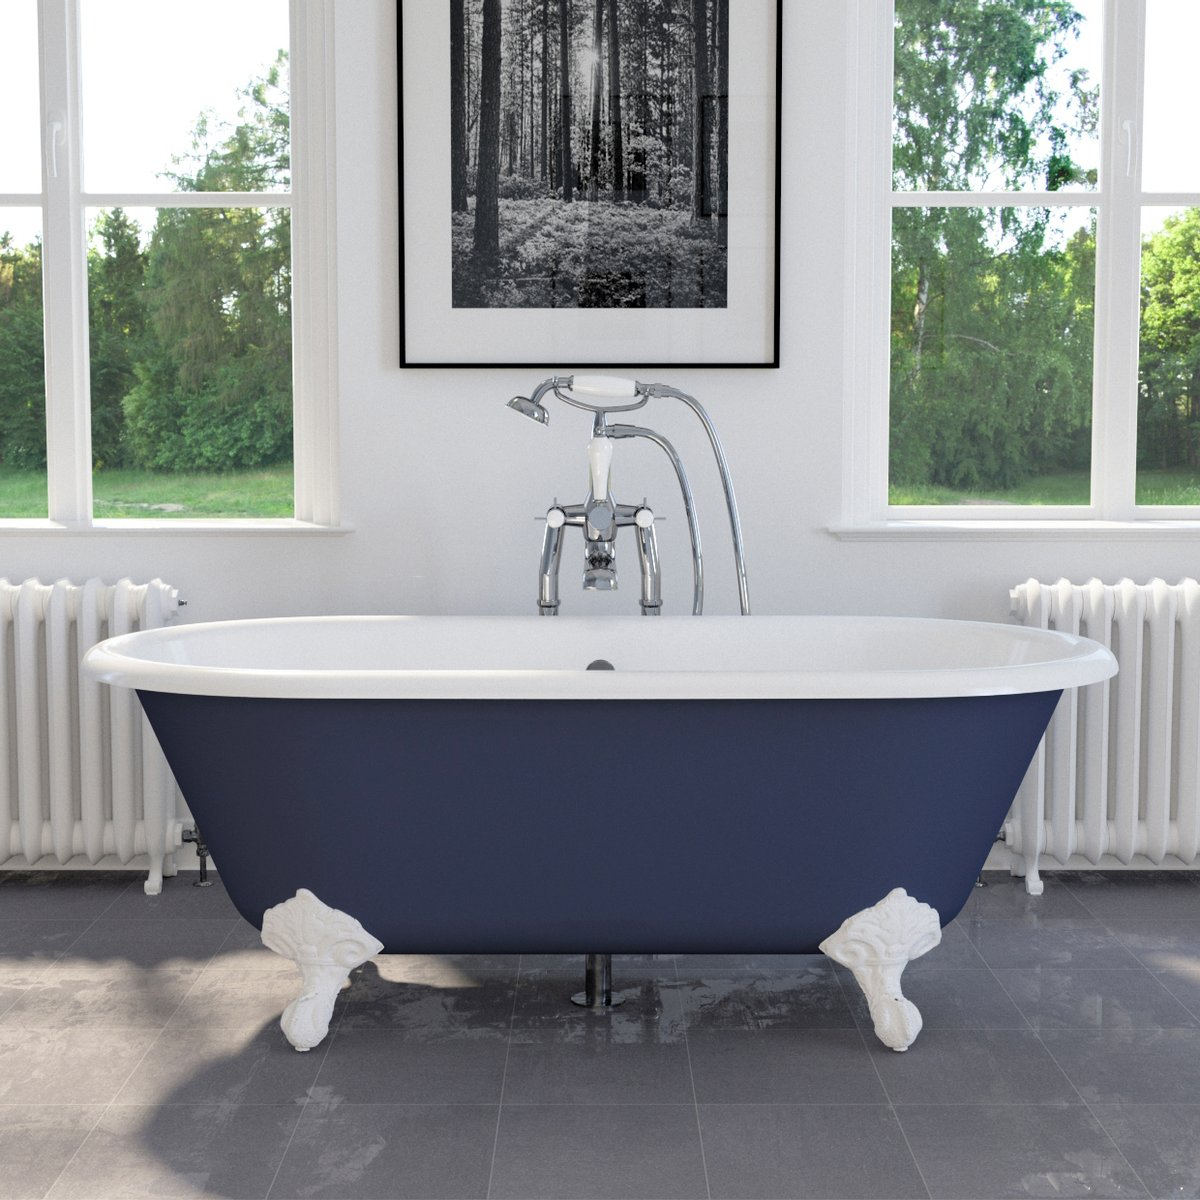 We are pleased to showcase our Dryden Small, shown in Farrow & Ball Drawing Room Blue View our Full Range of Cast Iron Baths: hurlinghambaths.co.uk/baths/cast-iro… #baths #castironbaths #bathrooms #bespokebaths #interiordesigns #homerenovations #bathroomdesigns #hurlinghambathrooms #expert